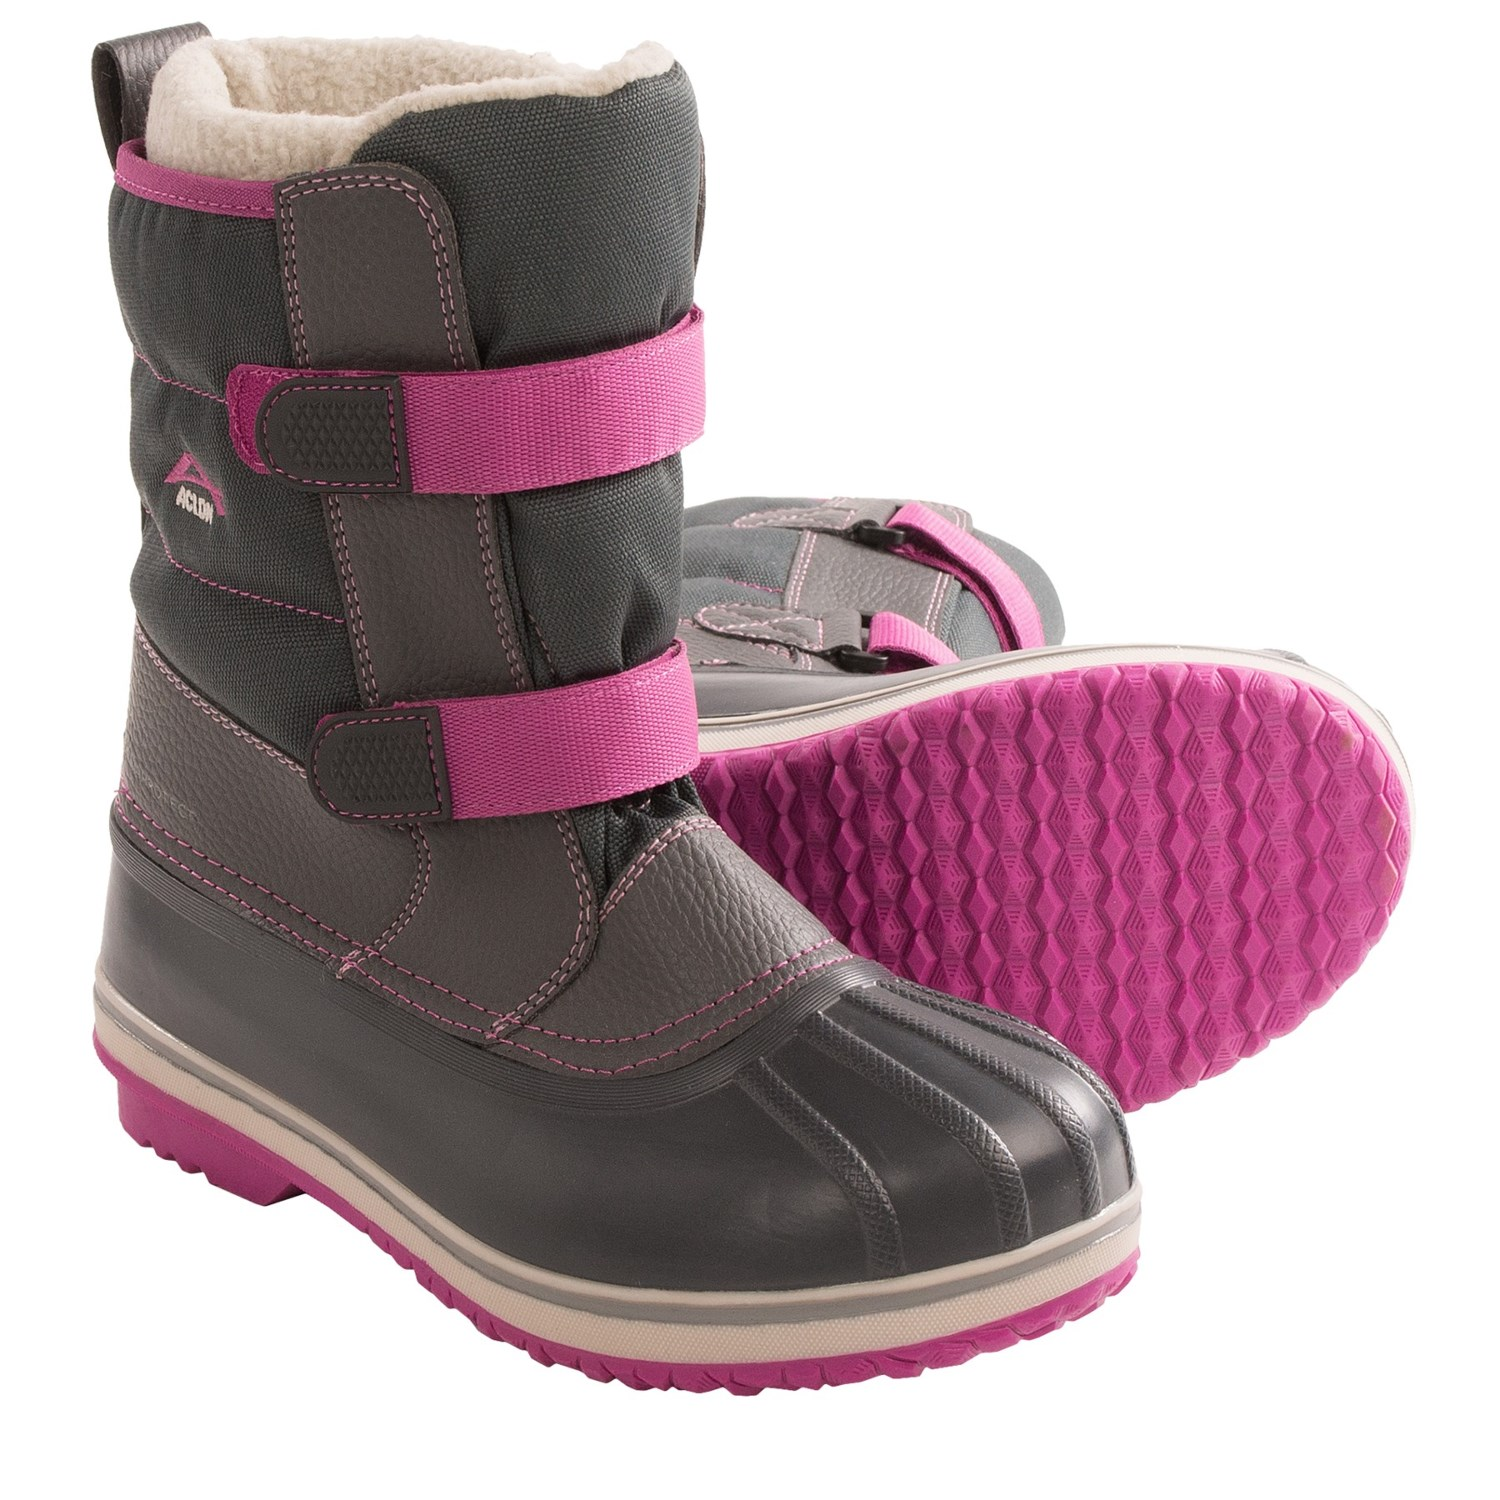 Best Snow Boots For Kids H1hNcCdE